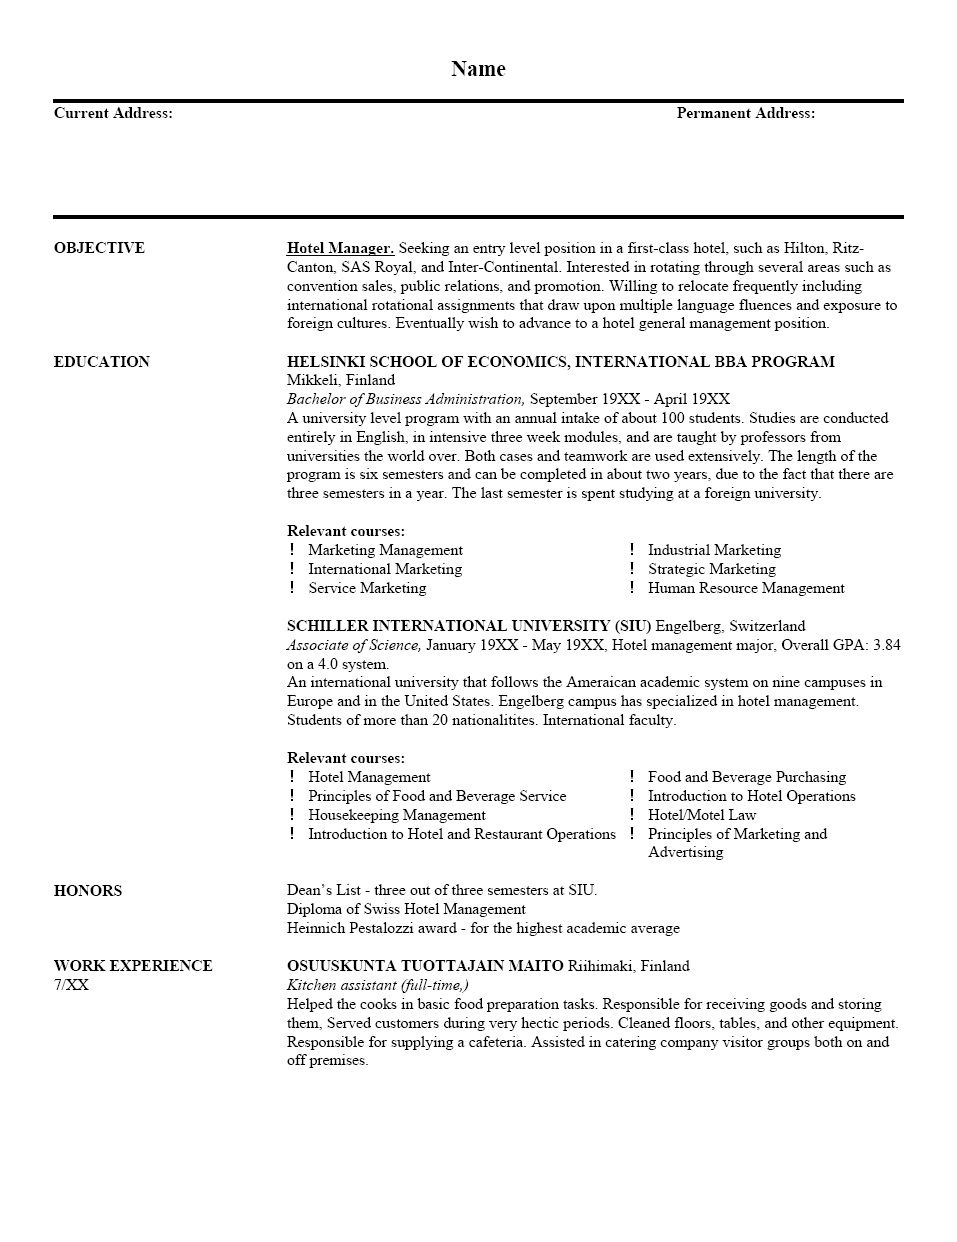 Free Examples Of Resume Template #816   Http://topresume.info/2014/12/03/ Free Examples Resume Template 816/